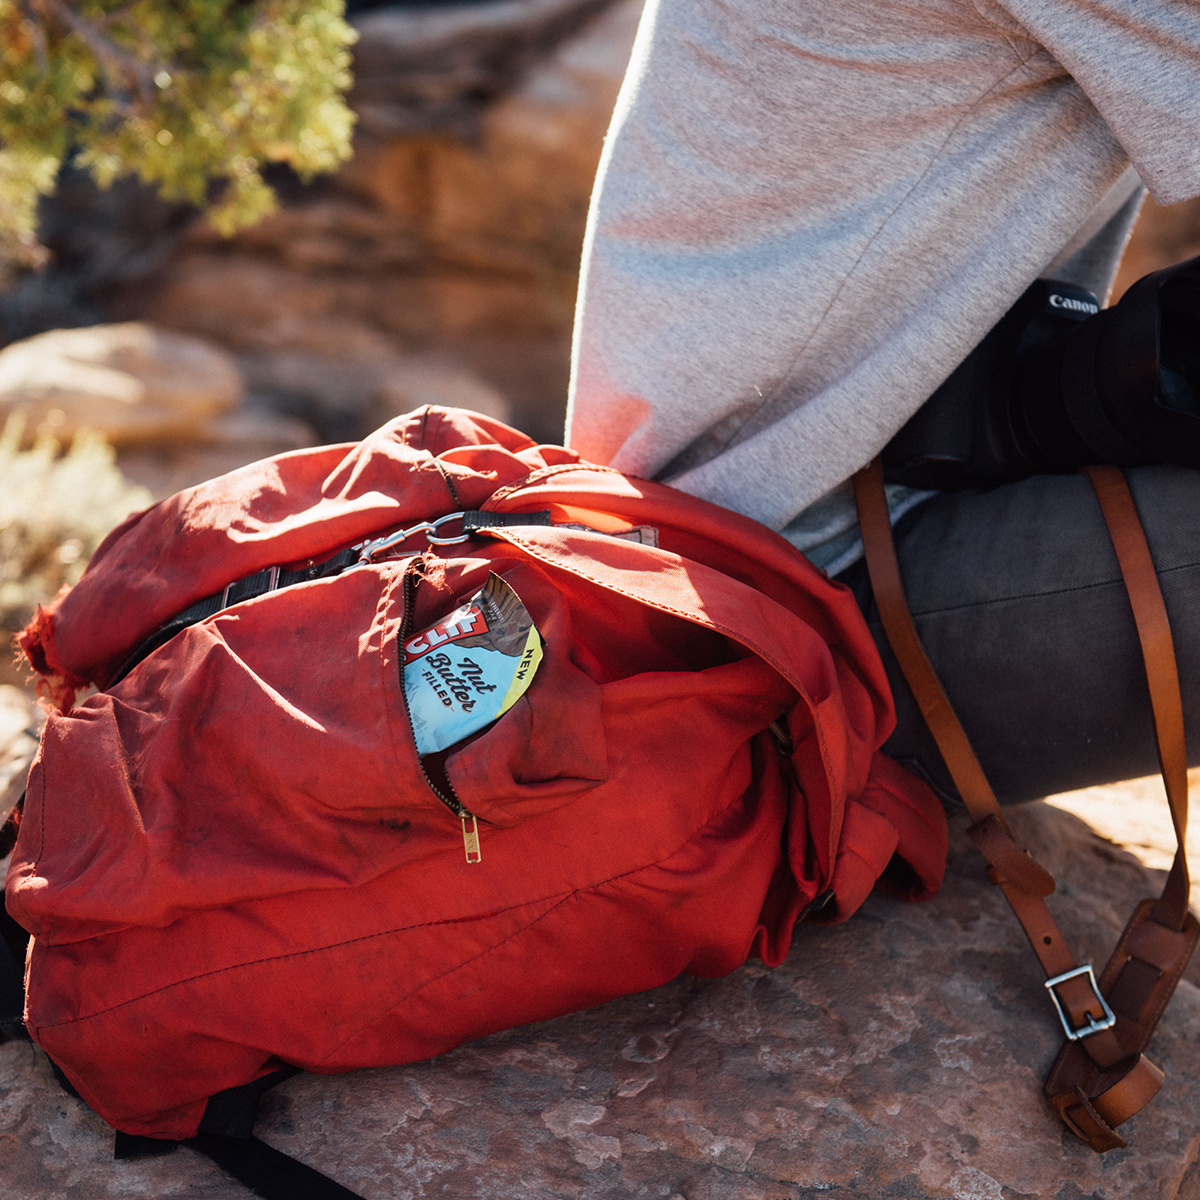 sq_clif-arches-michael-clif-backpack.jpg